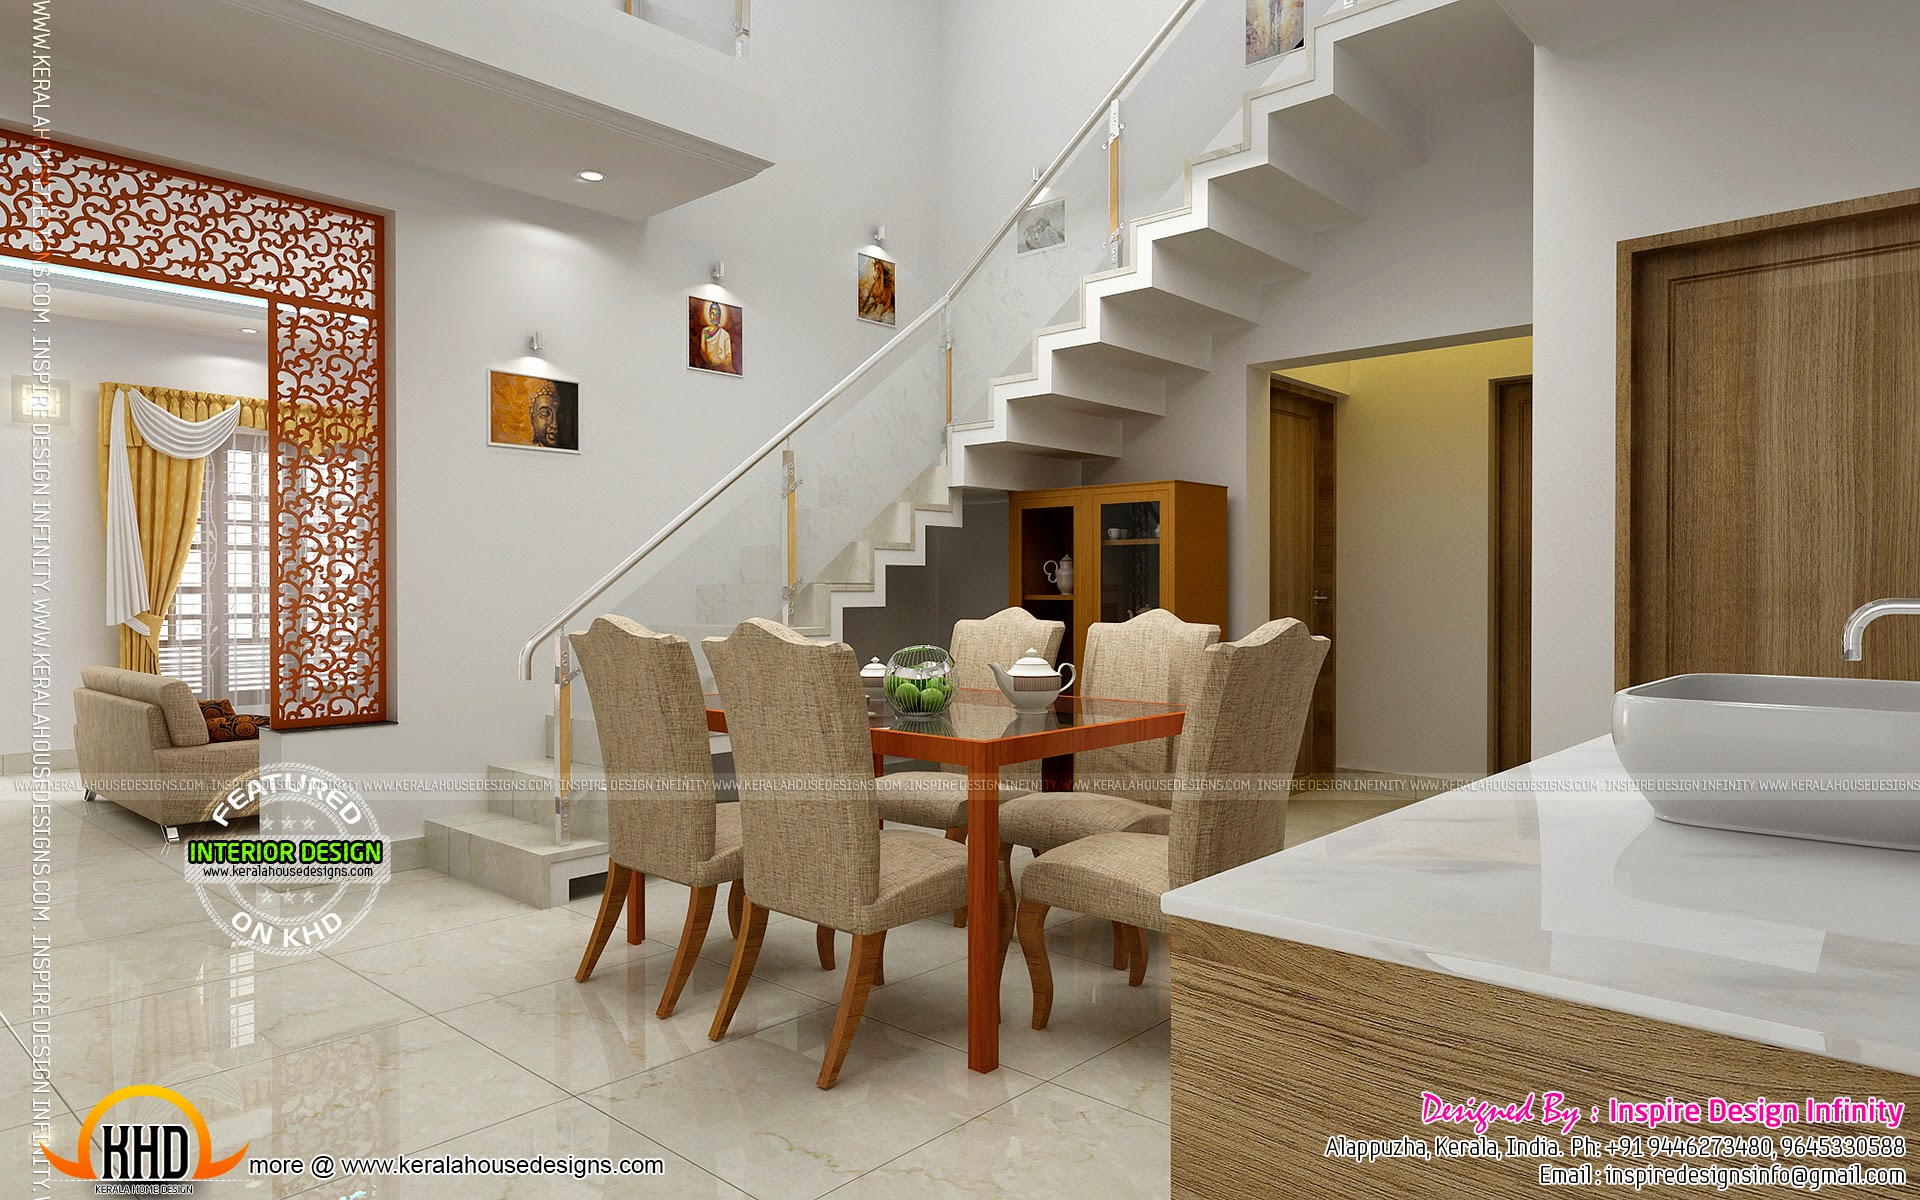 Dining room designs kerala home design and floor plans for Dining room designs india